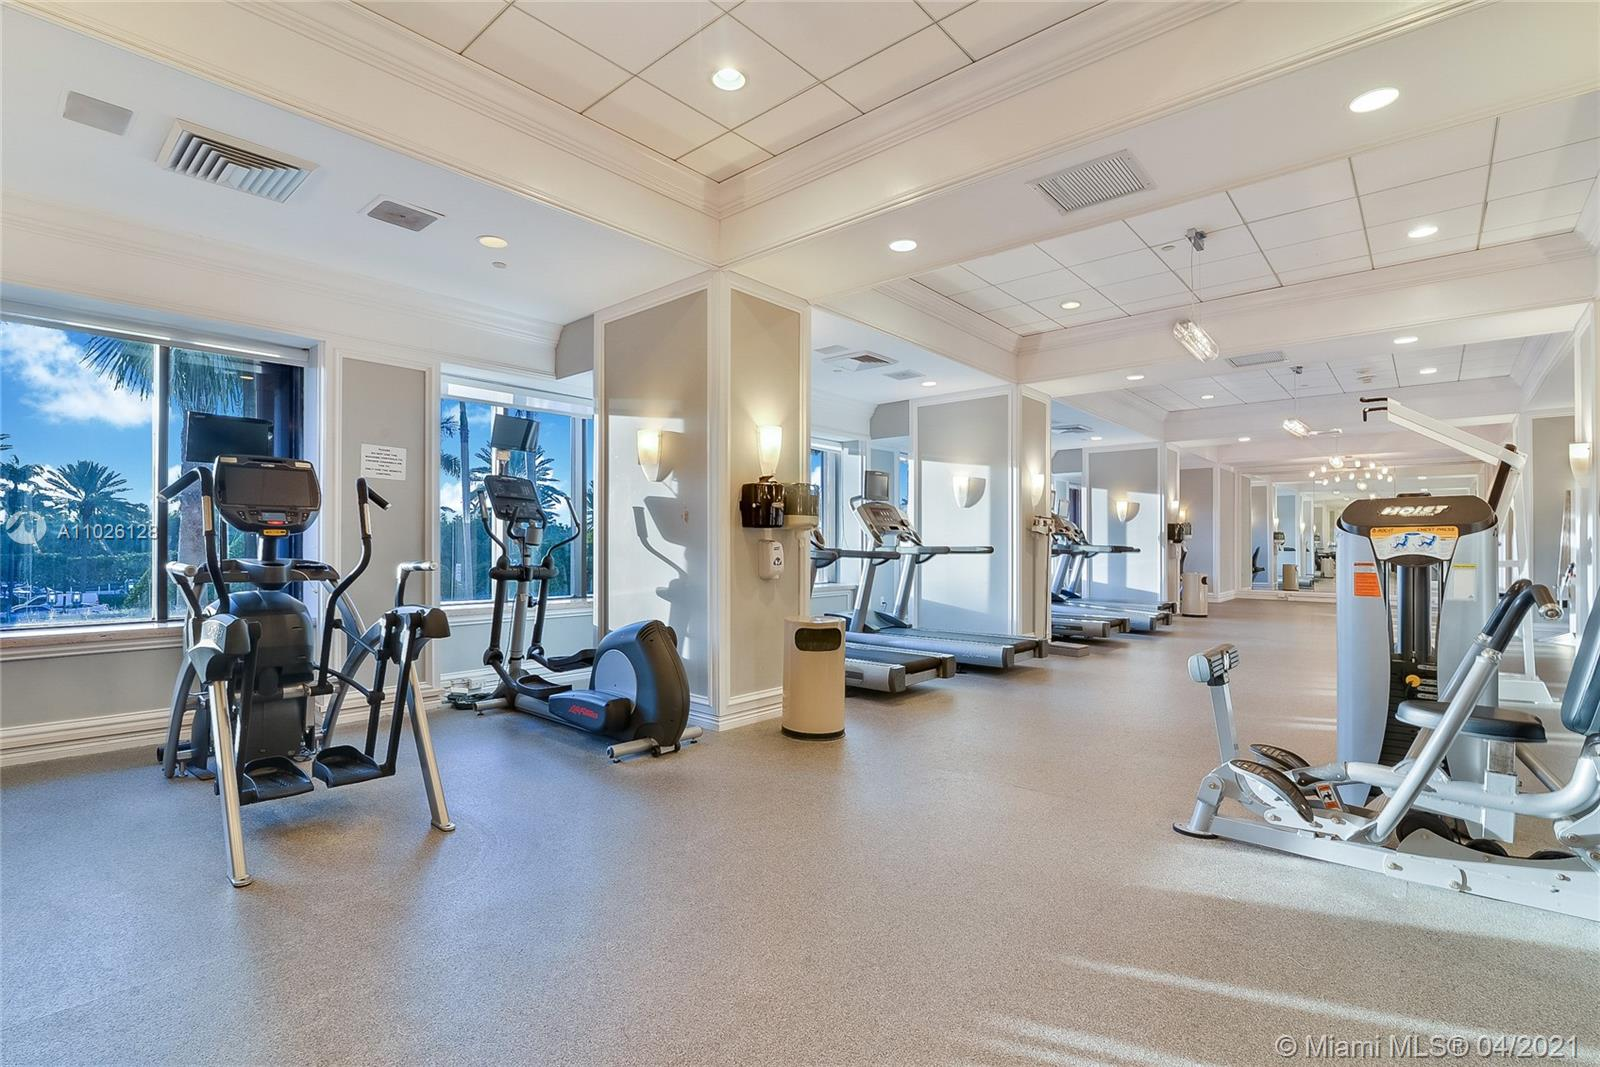 Photo of 9801 Collins Ave #20V, Bal Harbour, Florida, 33154 - Pool area at the third floor